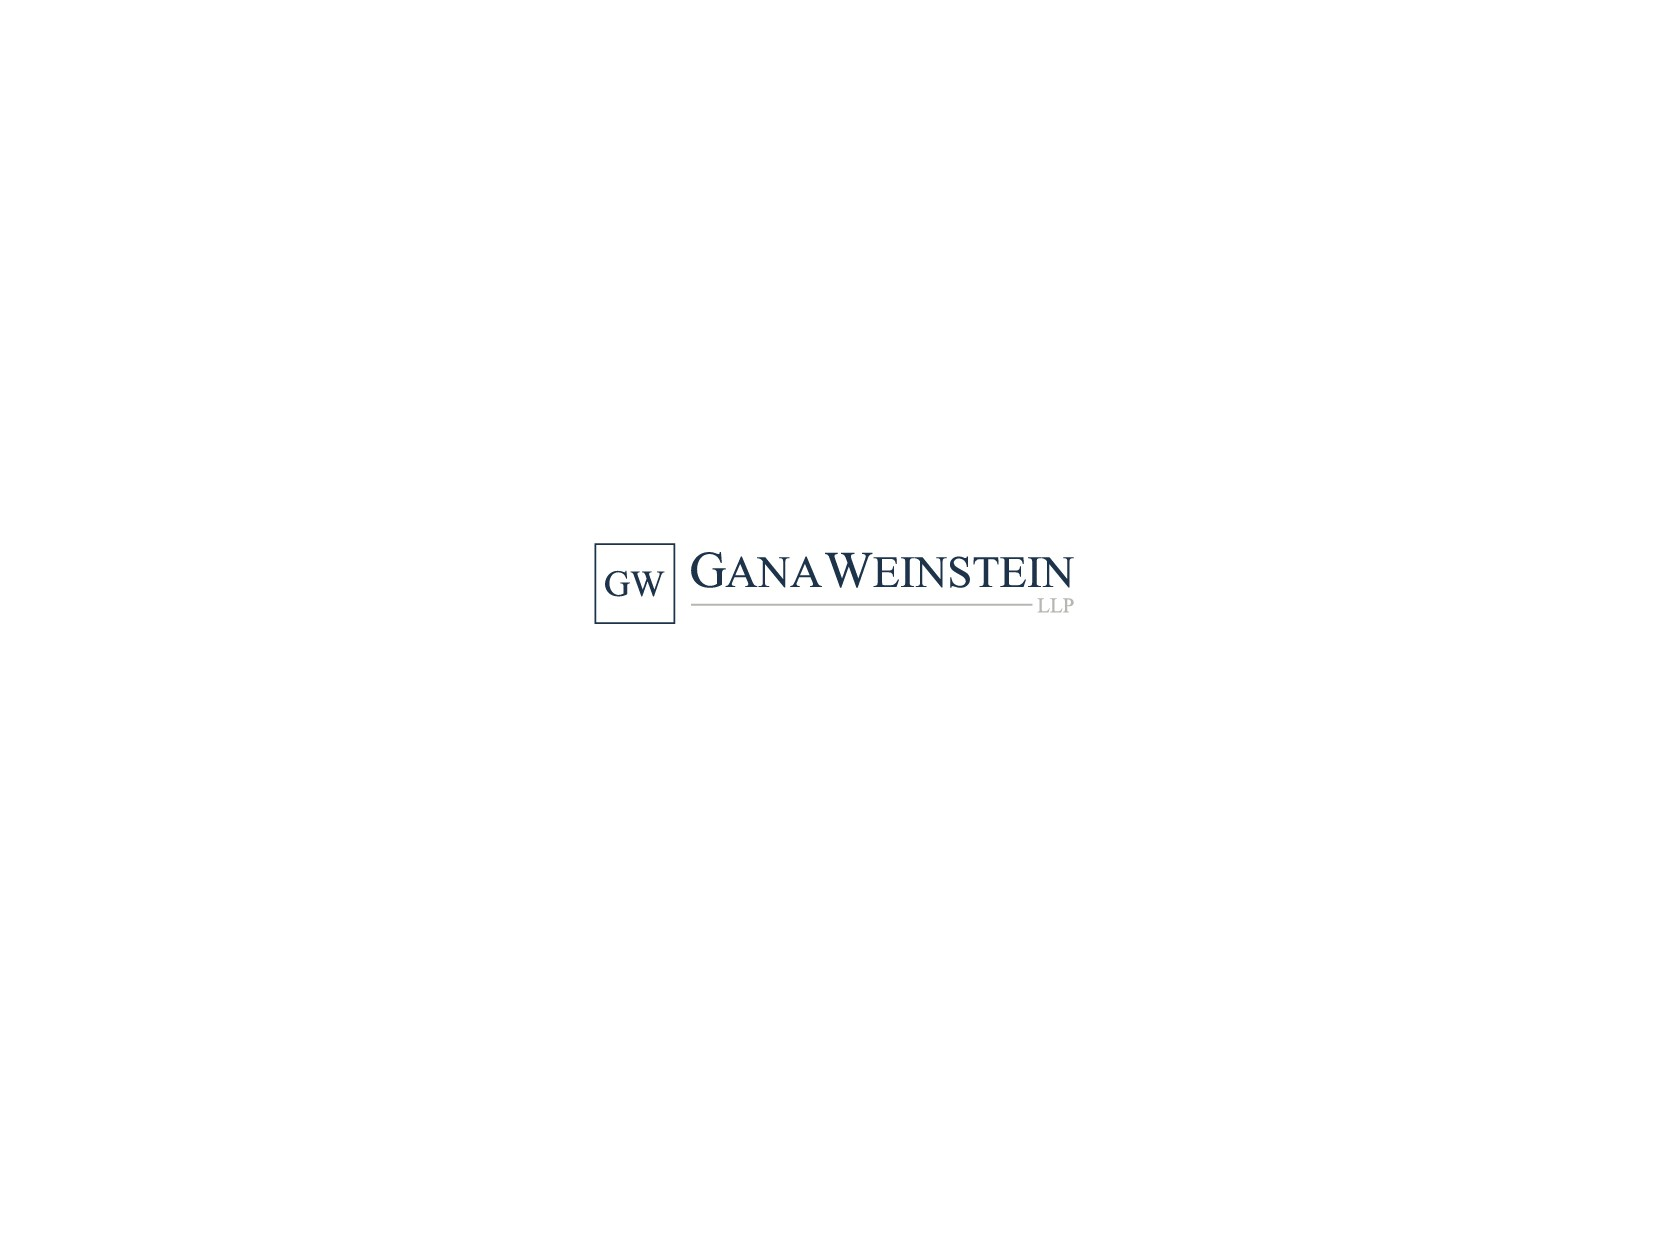 Law firm needs a powerful and clean new logo!